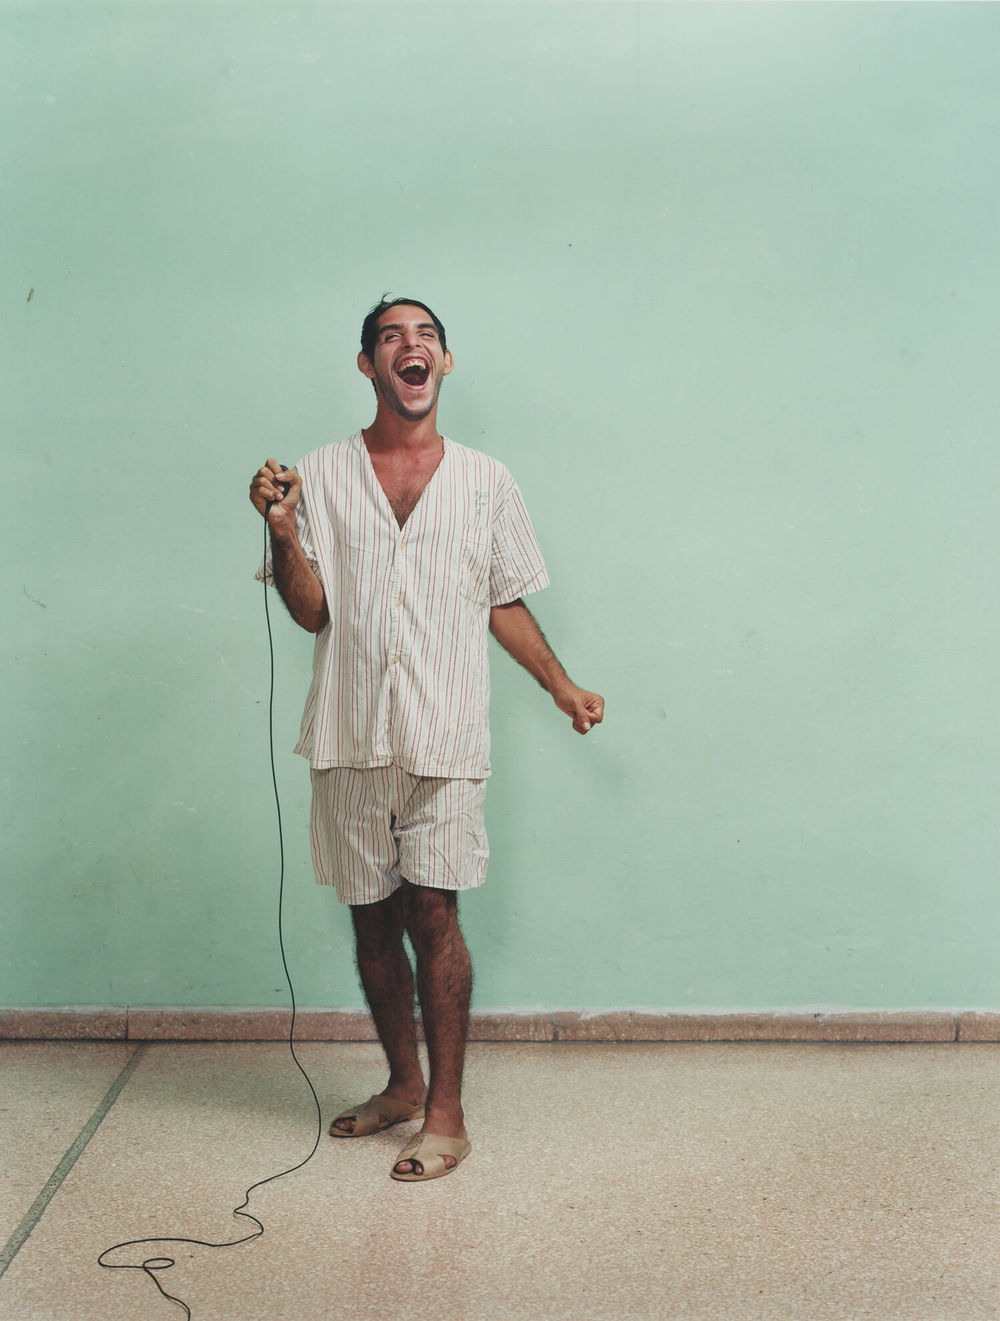 Rene Vallejo Psychiatric Hospital, Cuba, C-type print, 16 x 20 inches, 2003.